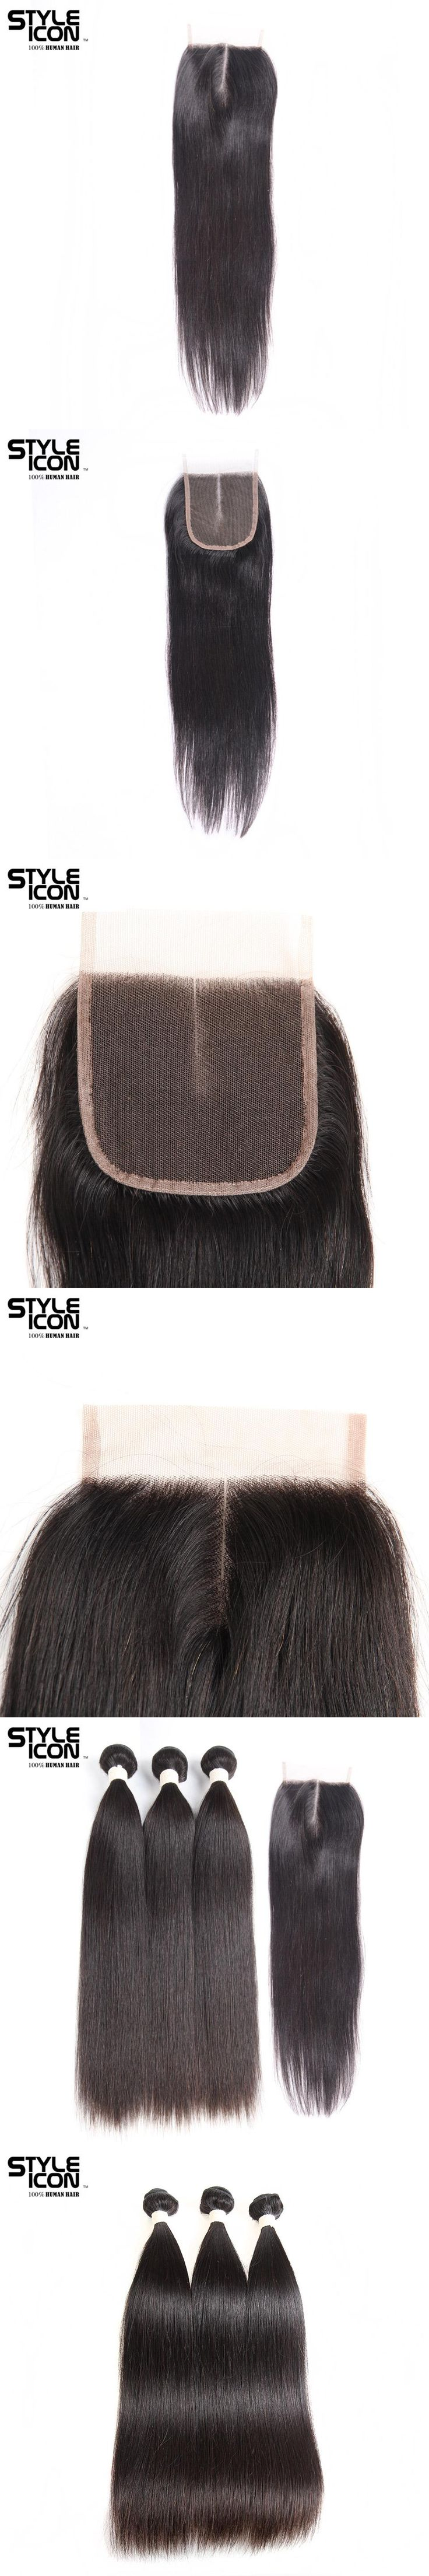 Styleicon Pre-colored Bundles With Closure Remy Malaysian Straight Hair Weave Bundles Extensions 3 Bundles With Closure